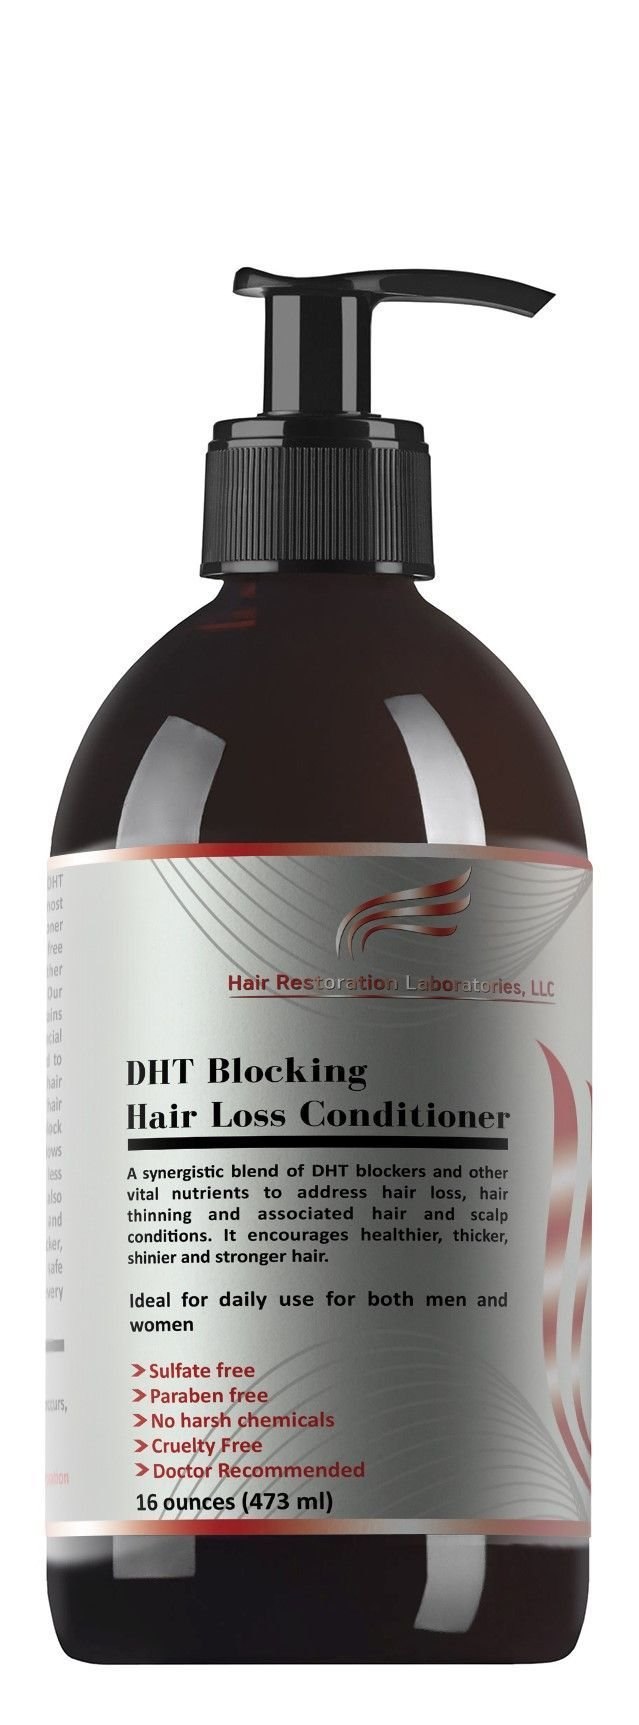 HAIR RESTORATION LABORATORIES' DHT BLOCKING HAIR LOSS CONDITIONER-16 OUNCES. THE MOST EFFECTIVE HAIR LOSS CONDITIONER EVER DEVELOPED FOR MEN & WOMEN: OVER 20 DHT BLOCKERS.